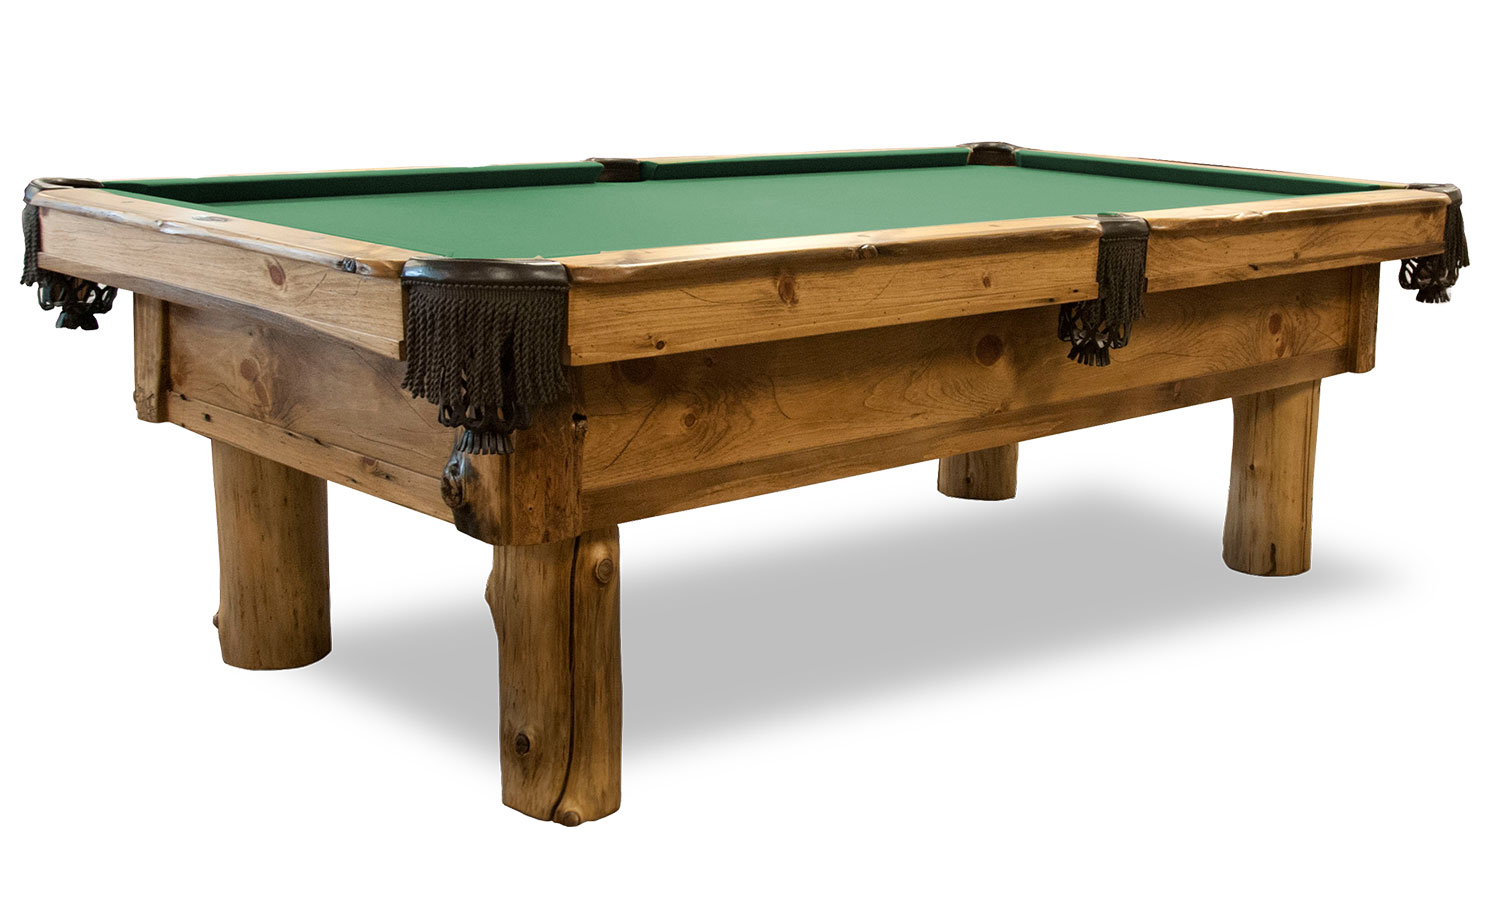 Pine Haven Rustic Pool Table